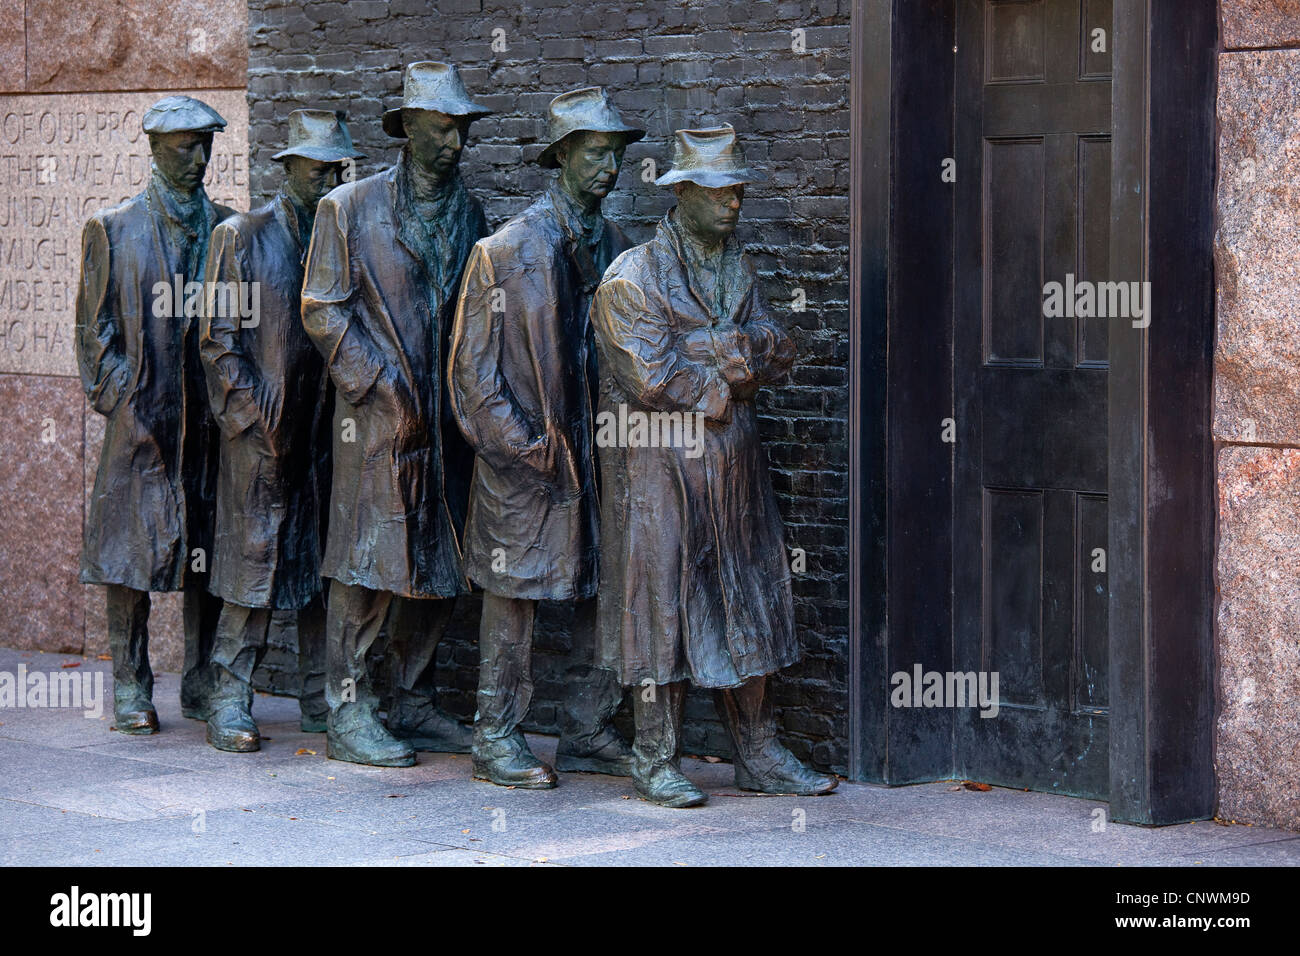 The Franklin D. Roosevelt Memorial - Stock Image